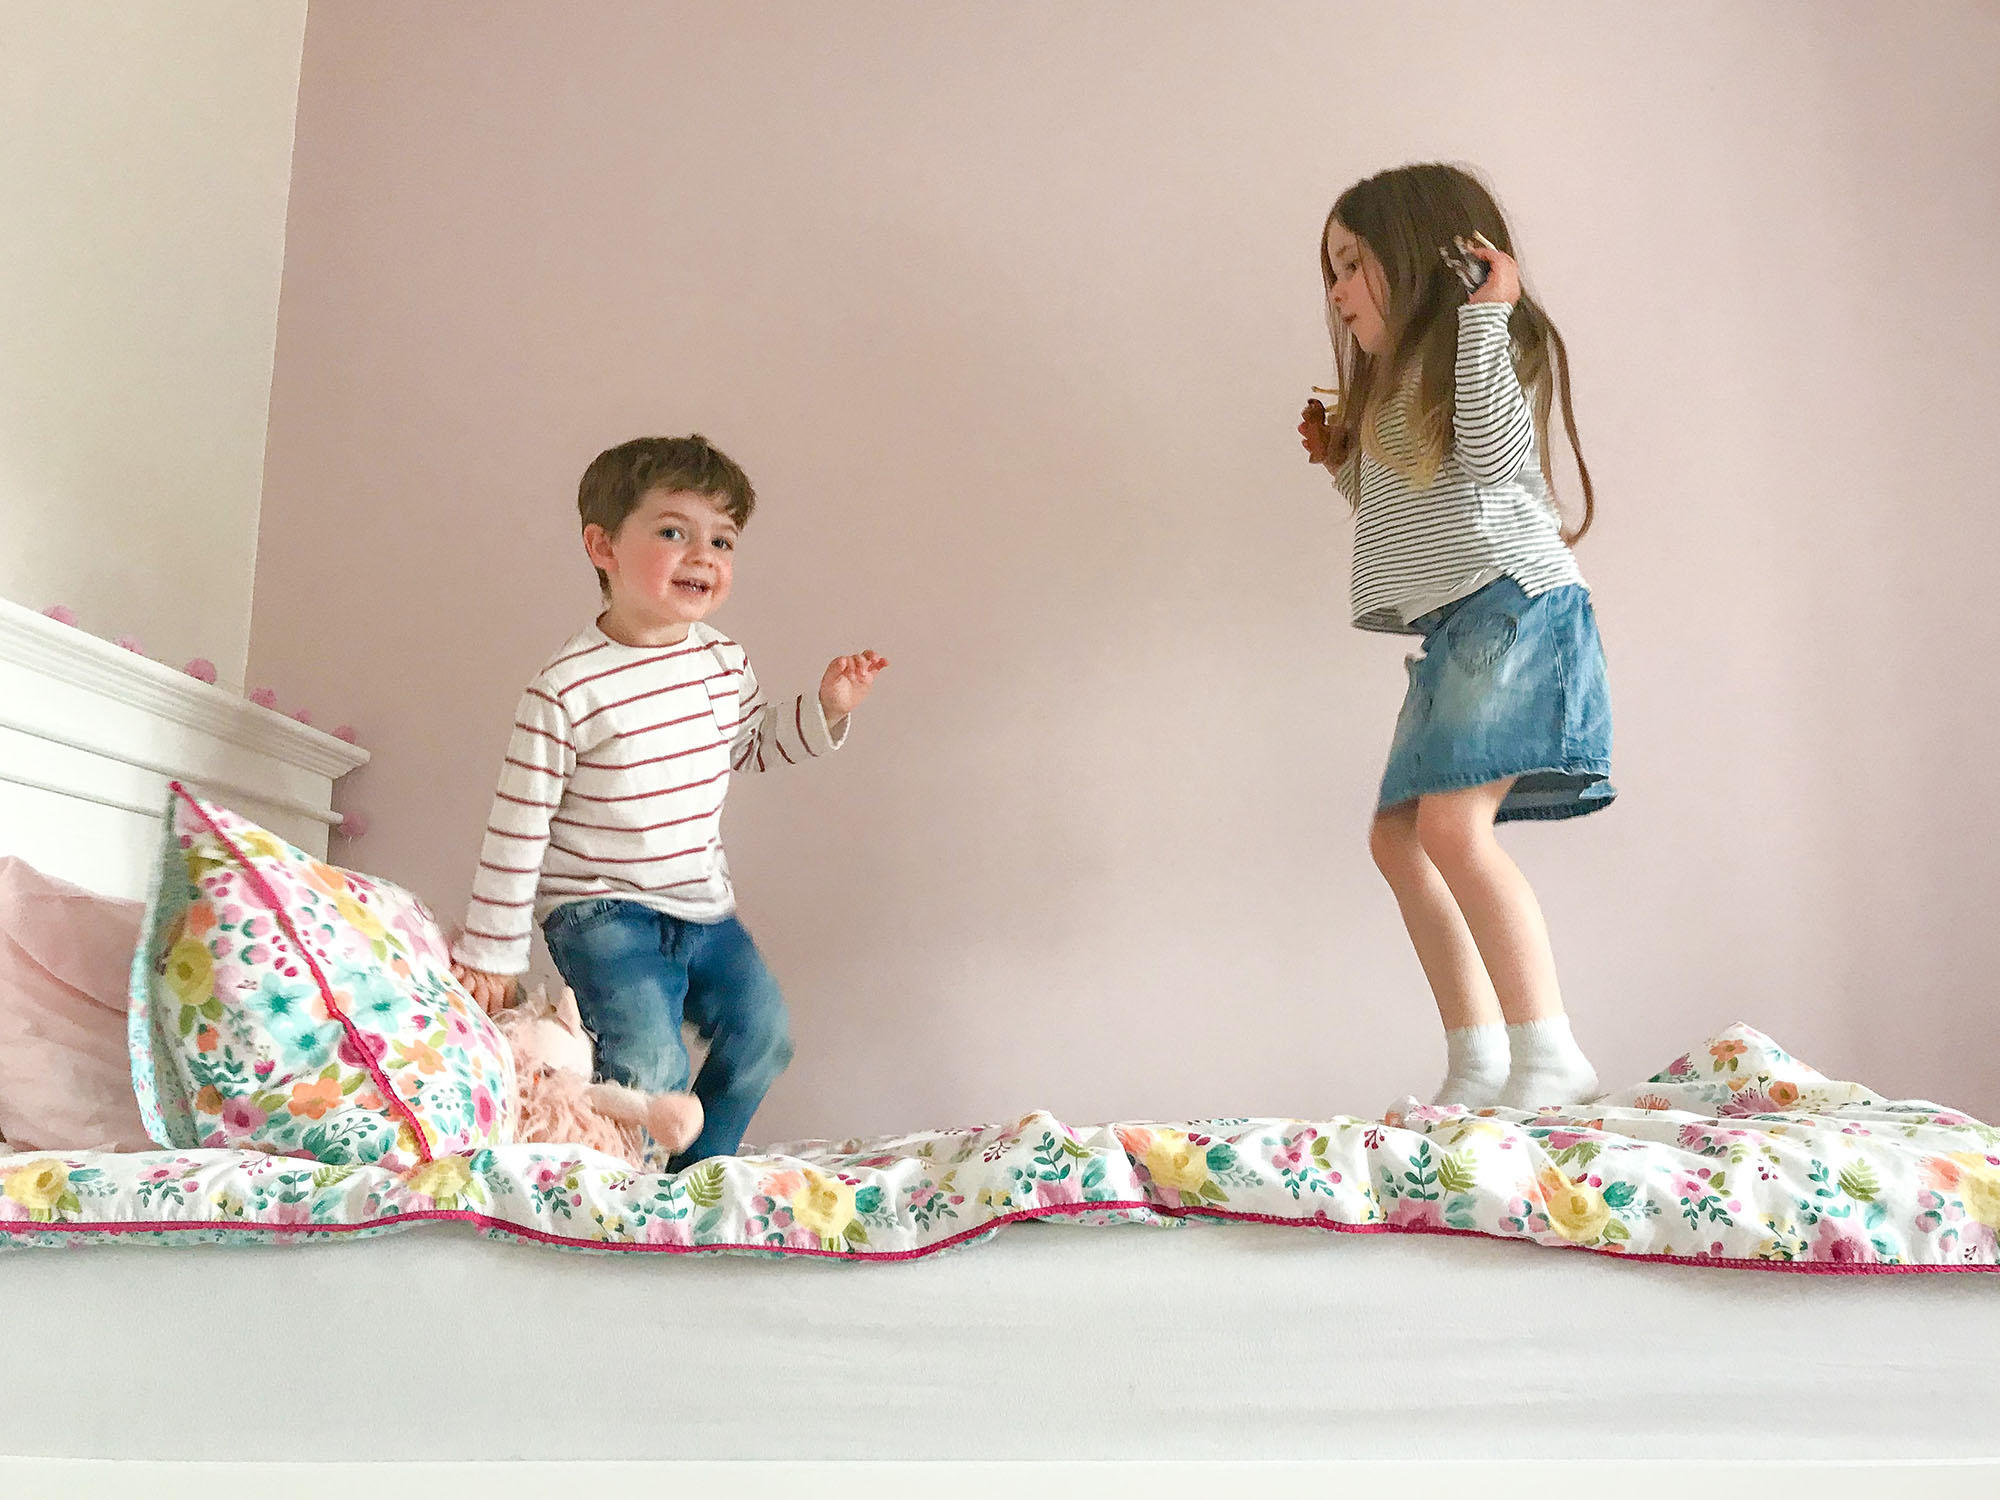 Taking professional photos with your phone, jumping on the bed